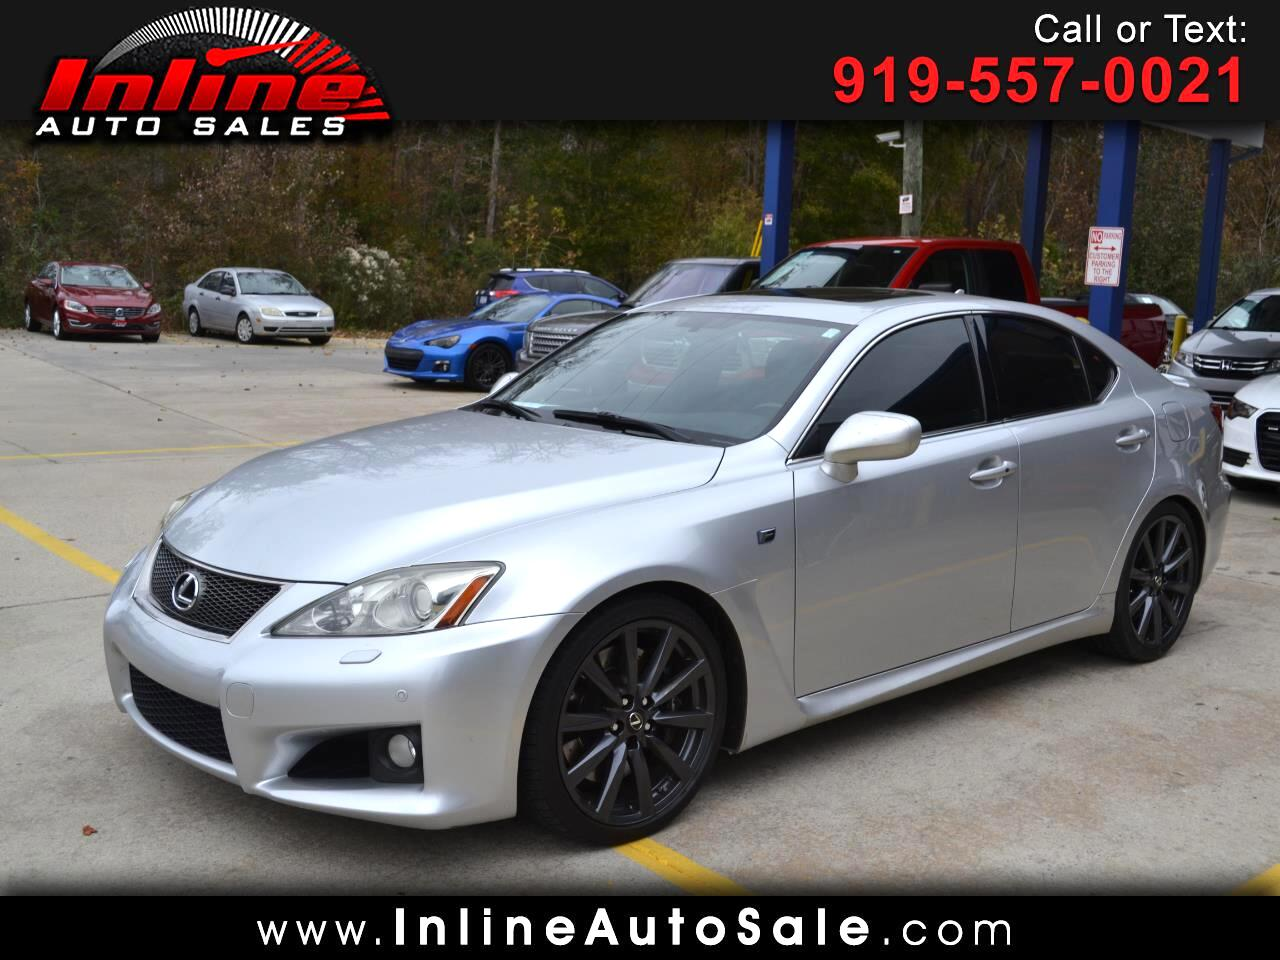 Lexus IS F 4dr Sdn 2009